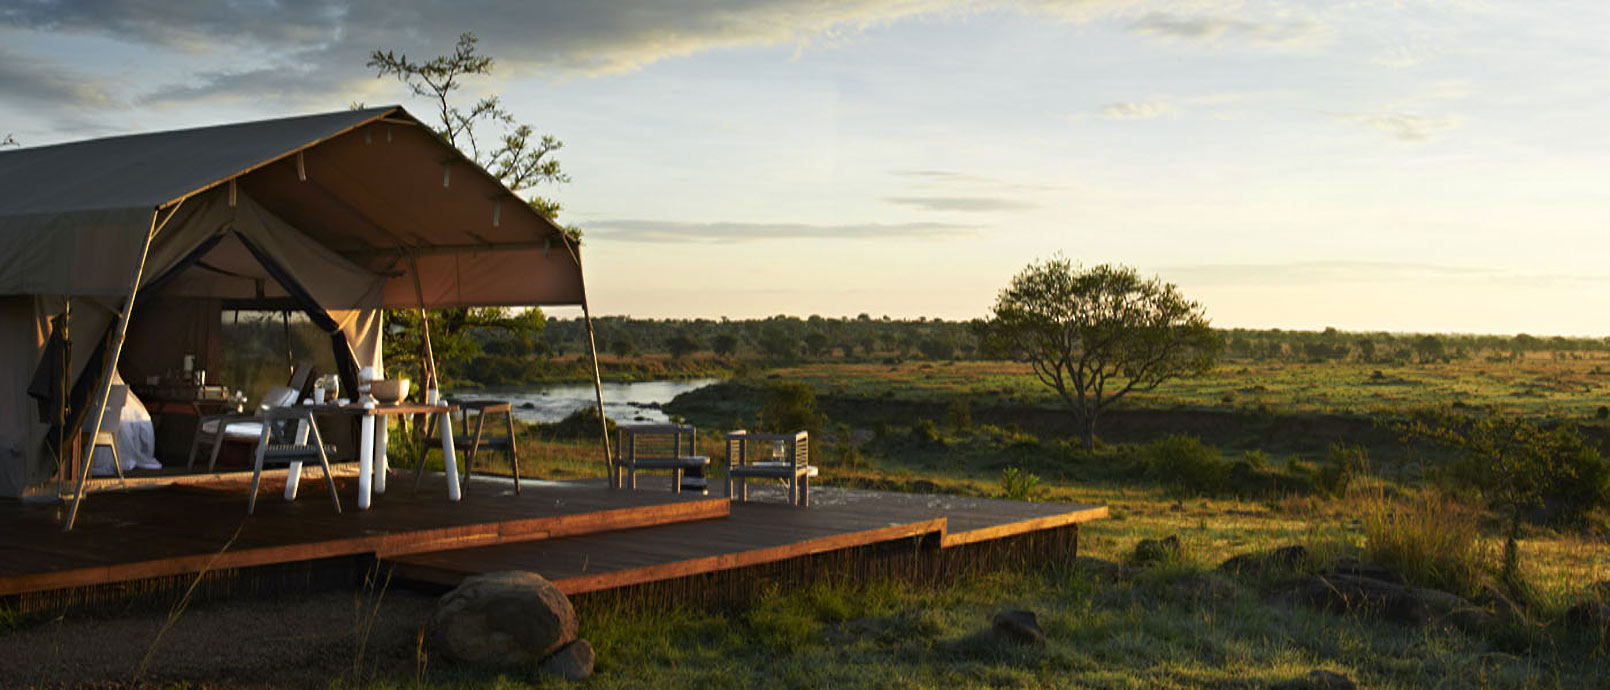 Singita Mara River Camp